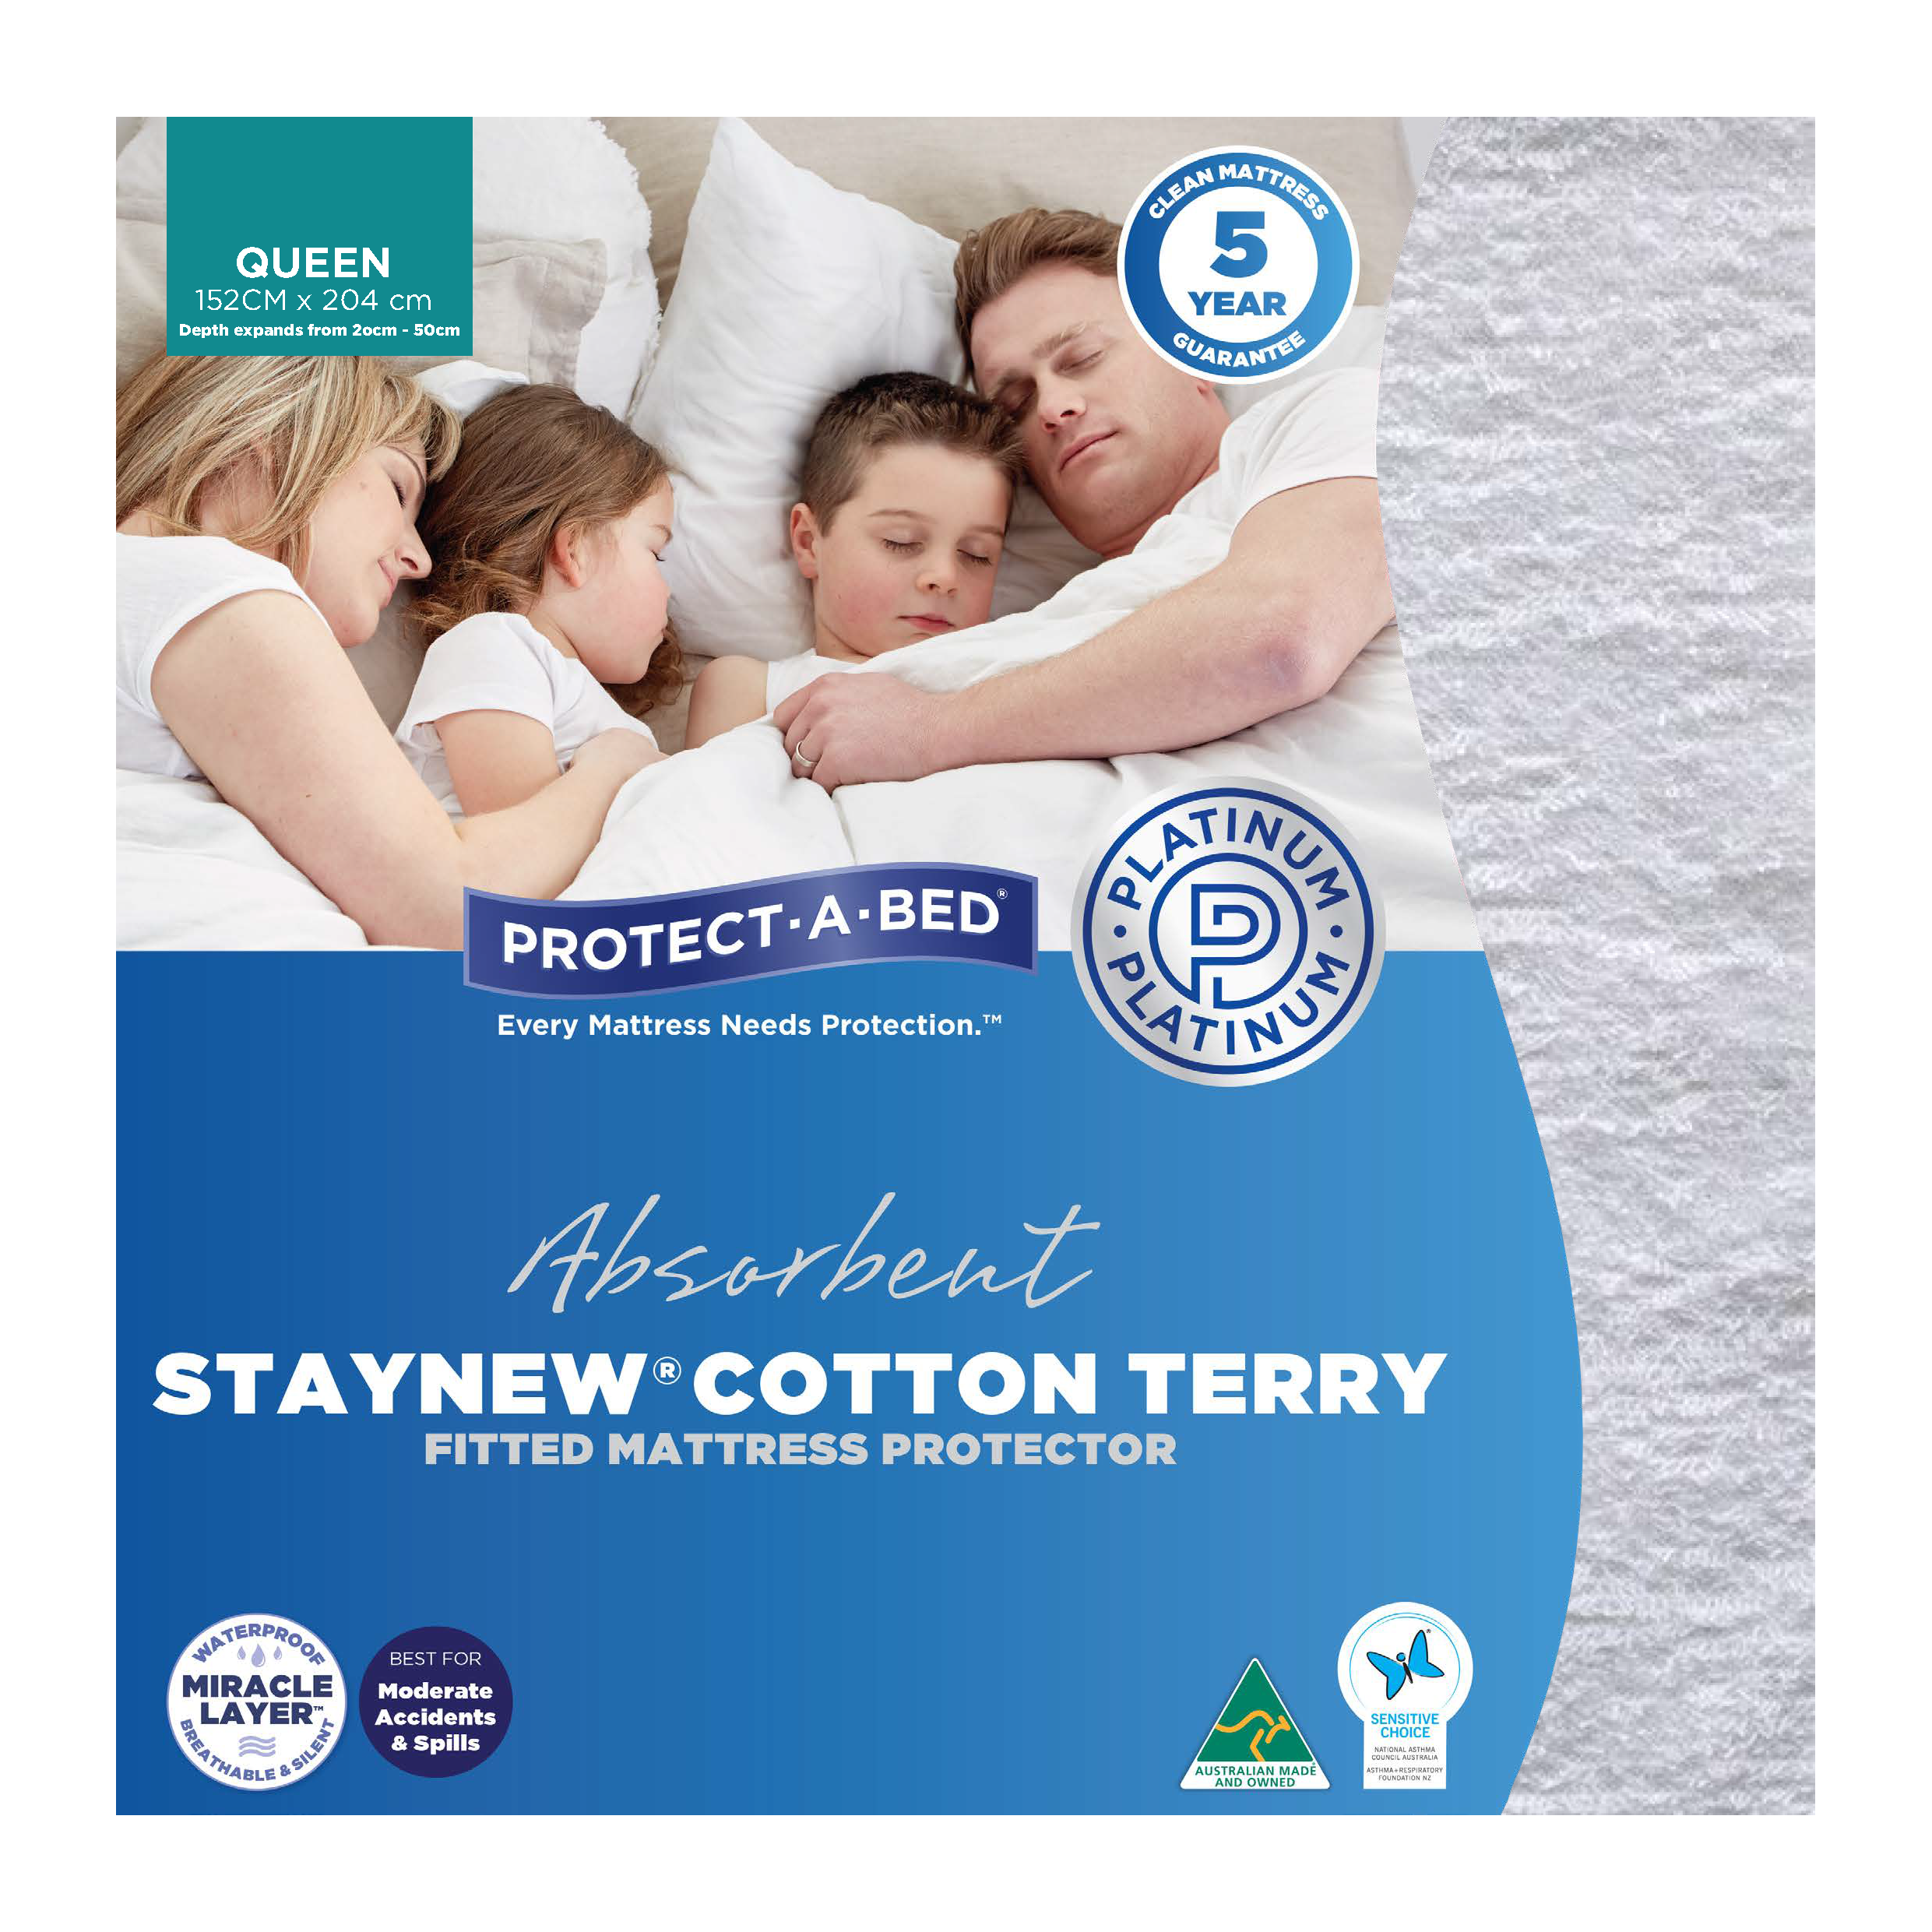 Protect-A-Bed Cotton Terry – Queen Mattress Protector